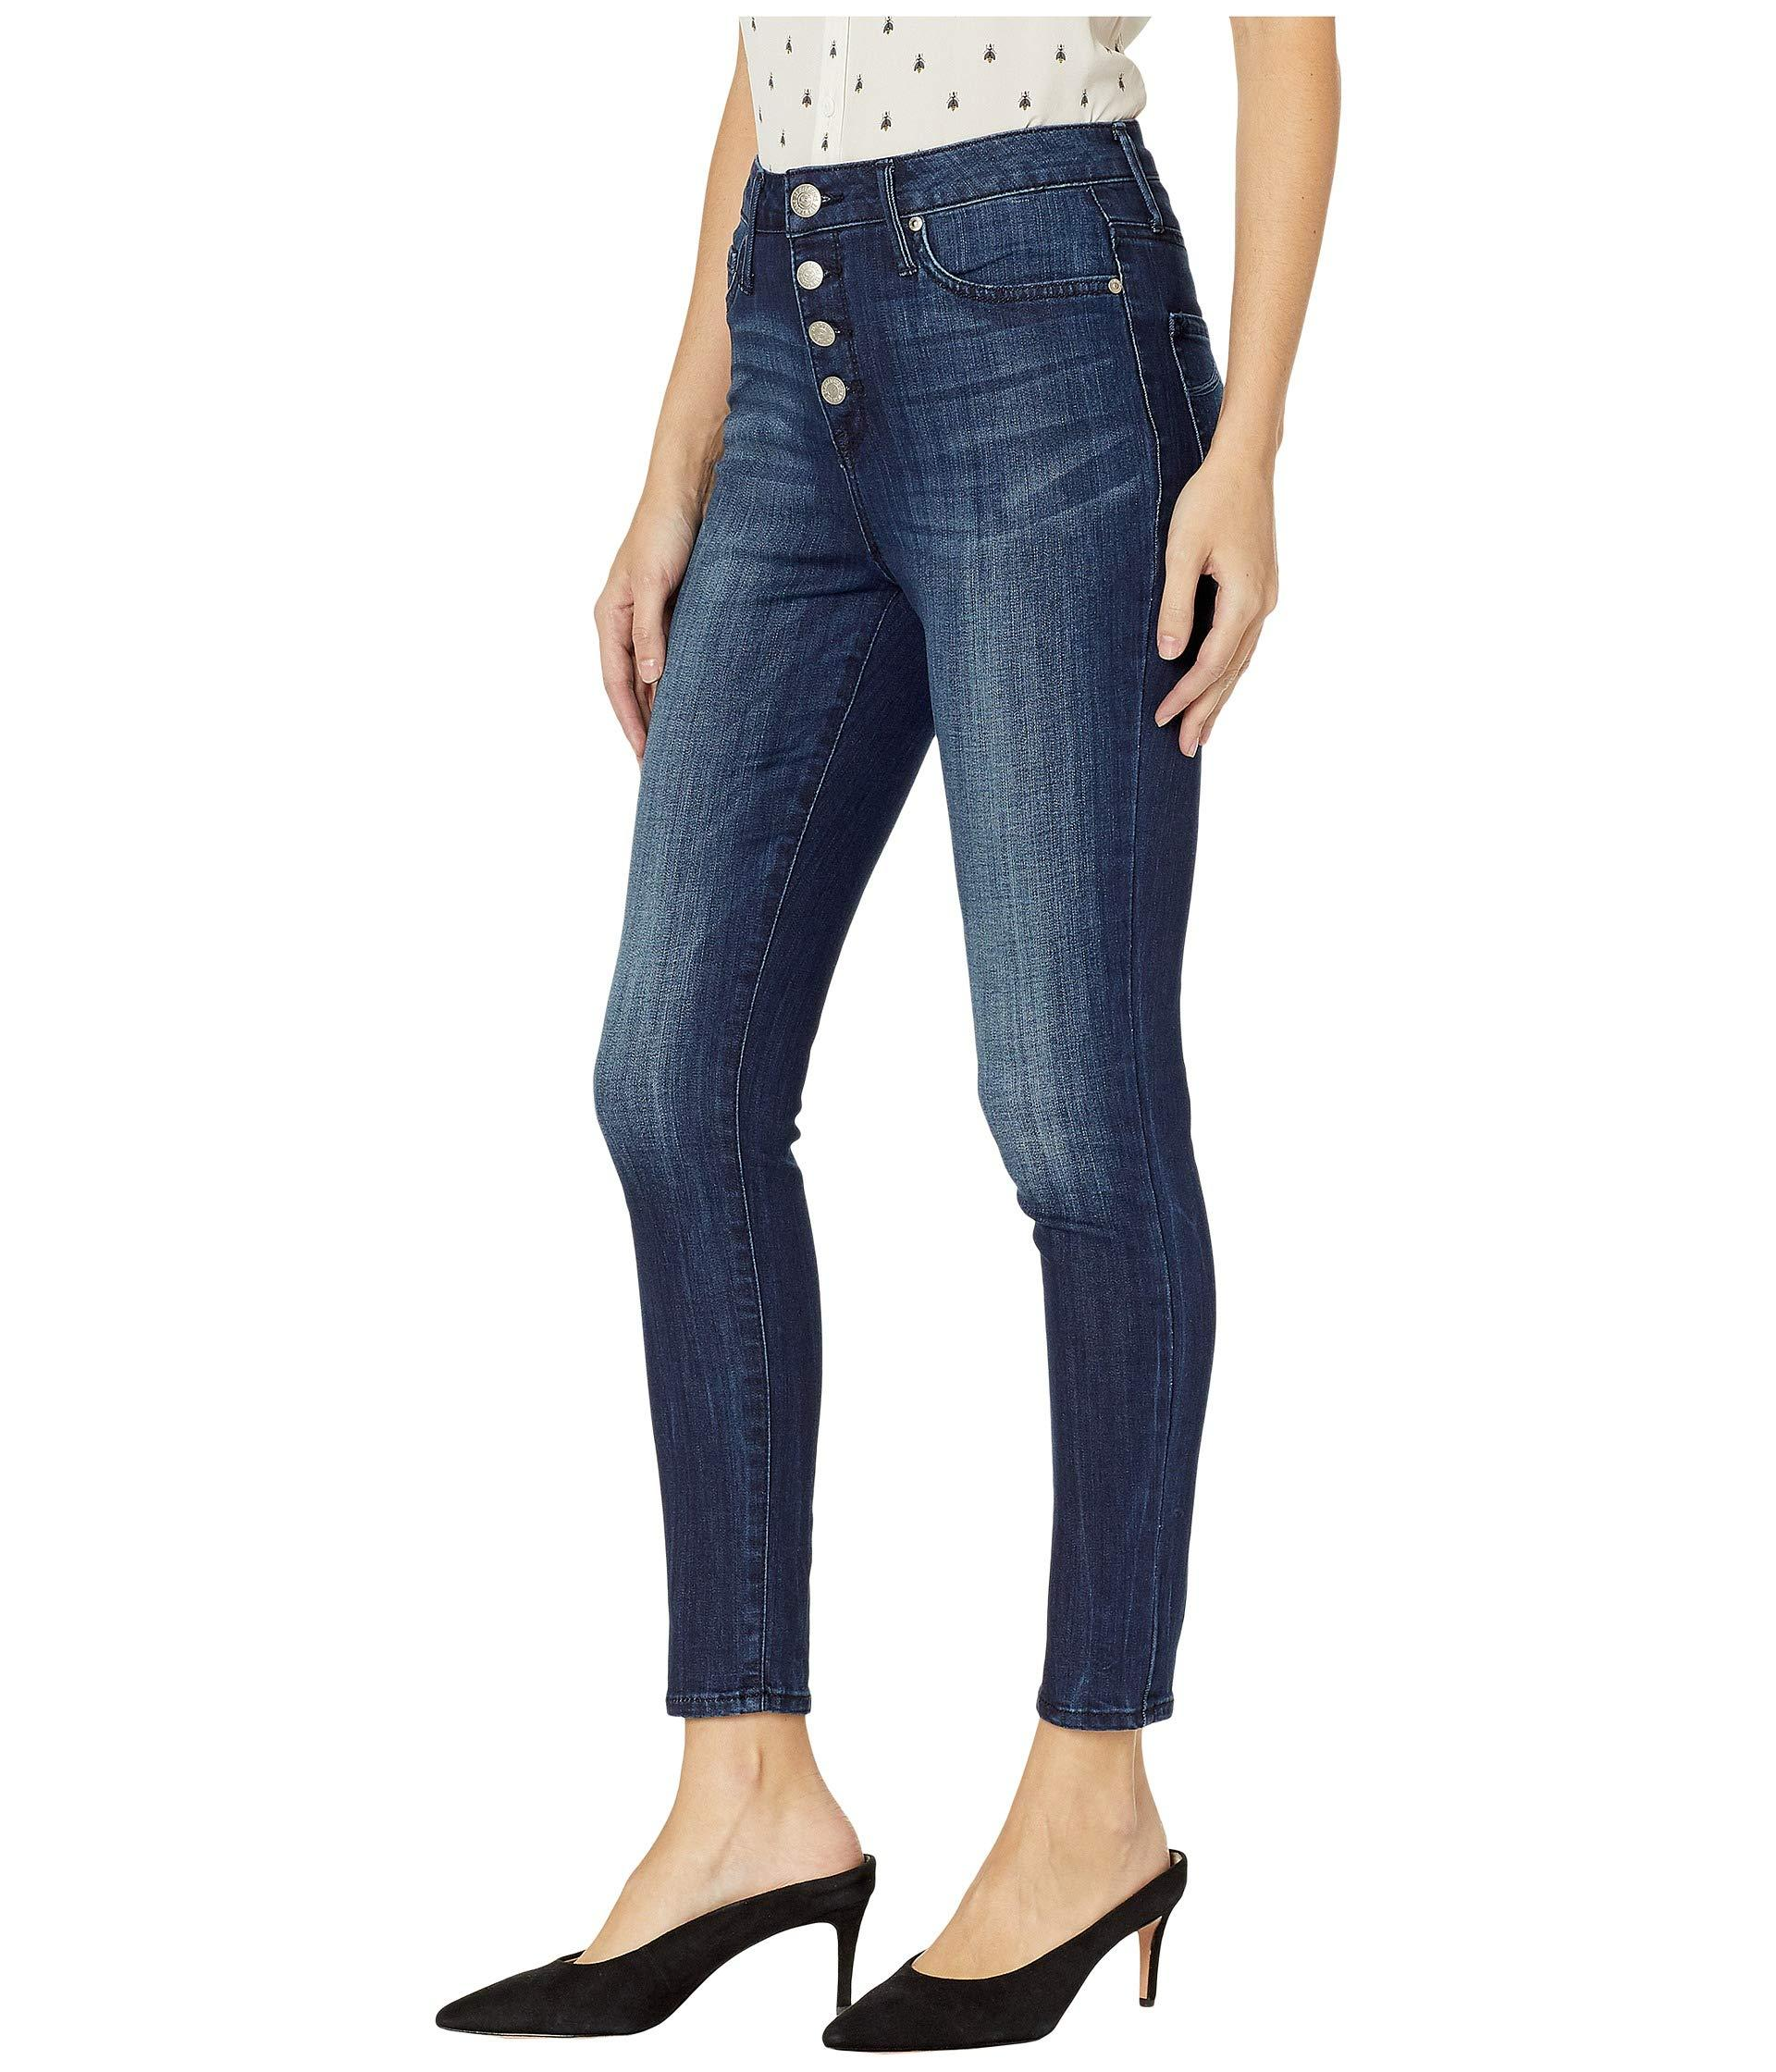 efd54026be9ca Lyst - Seven7 Ultra High-rise Ankle Skinny Exposed Button Front In Avalon  in Blue